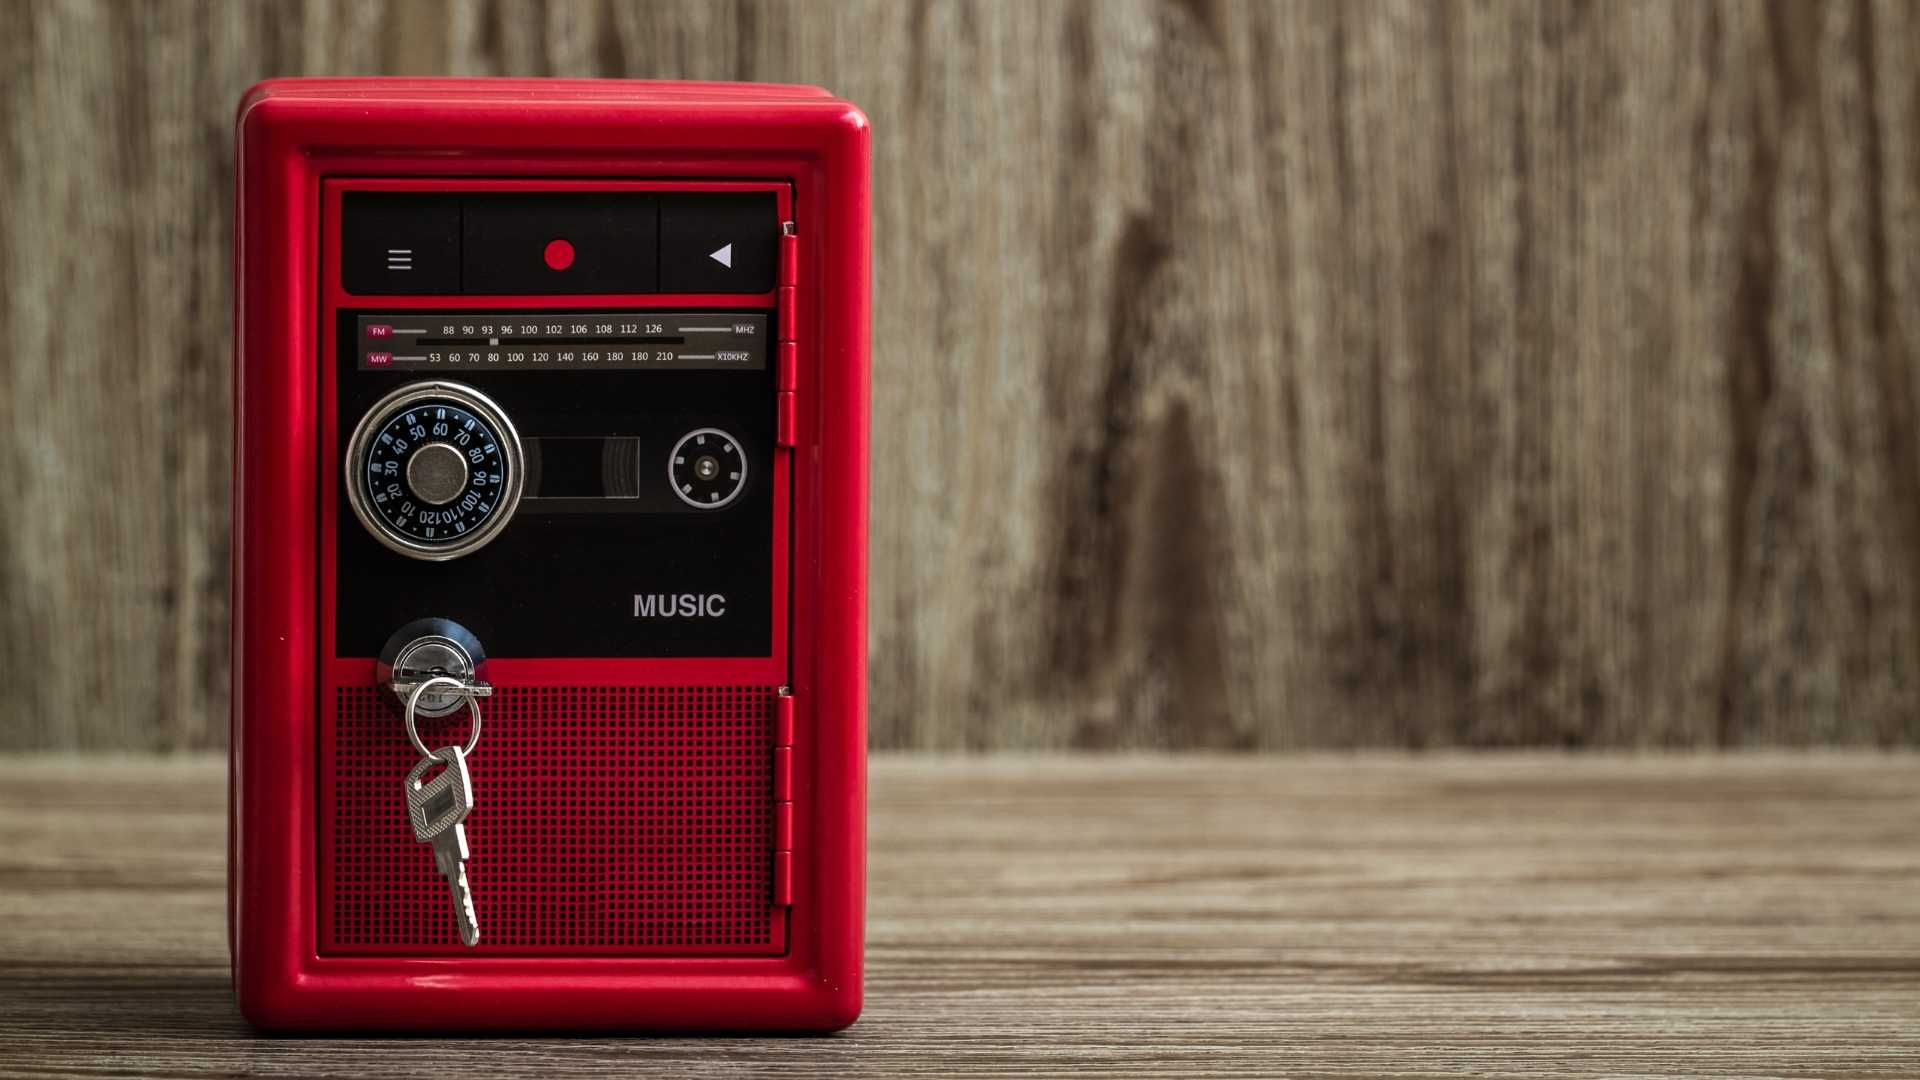 red musical toy with a key and lock